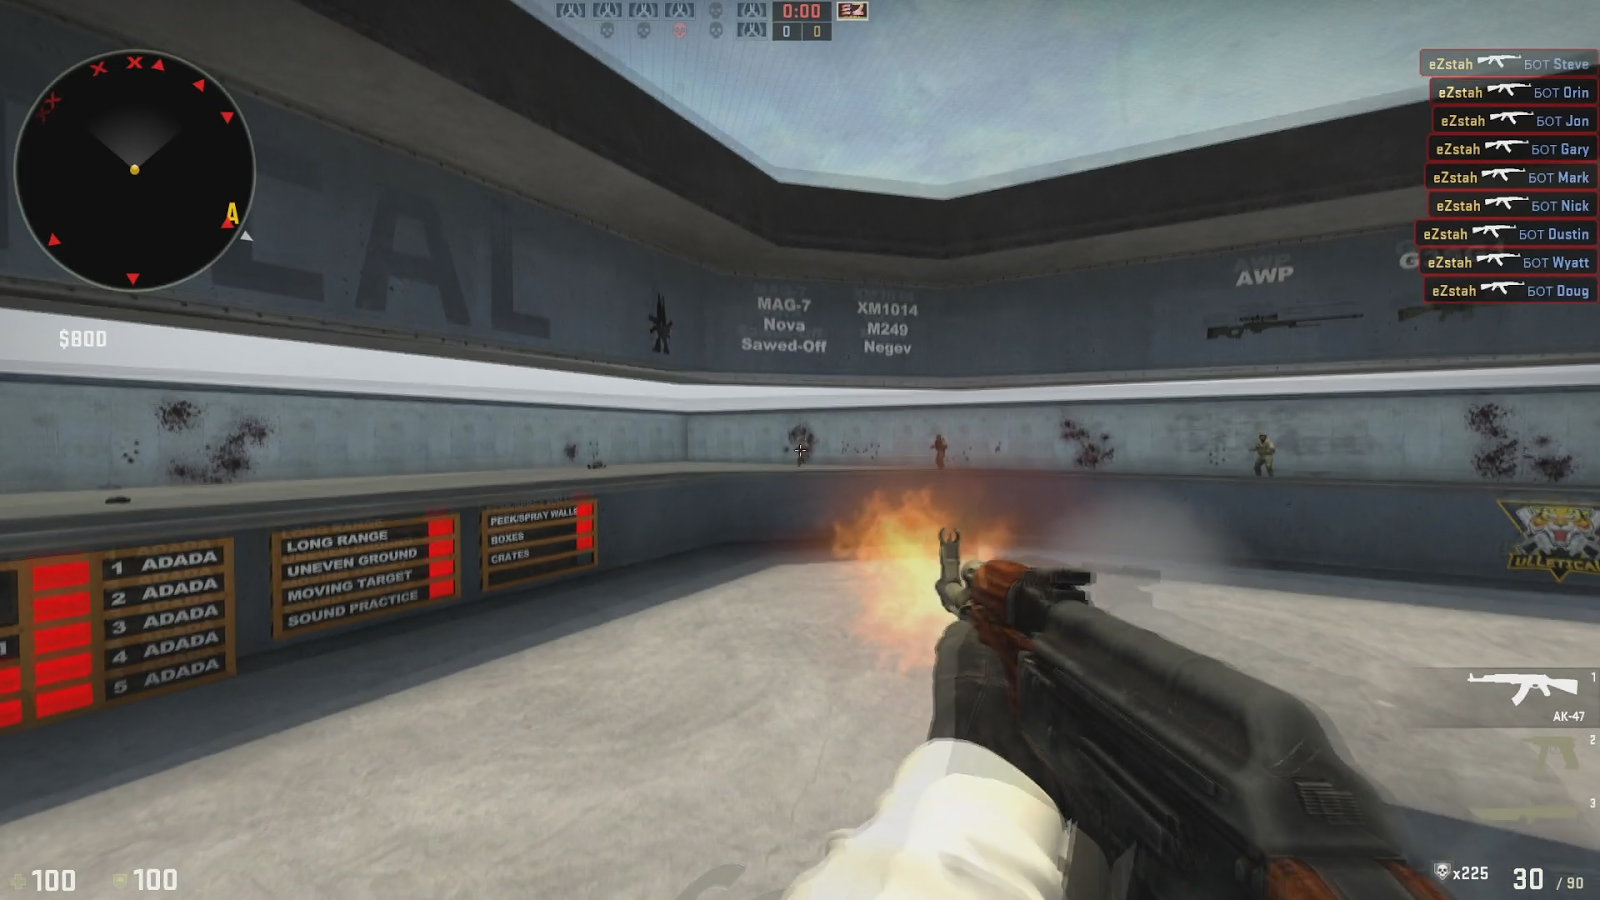 Detailed Training Guide for CS:GO - Tips for Shooting and